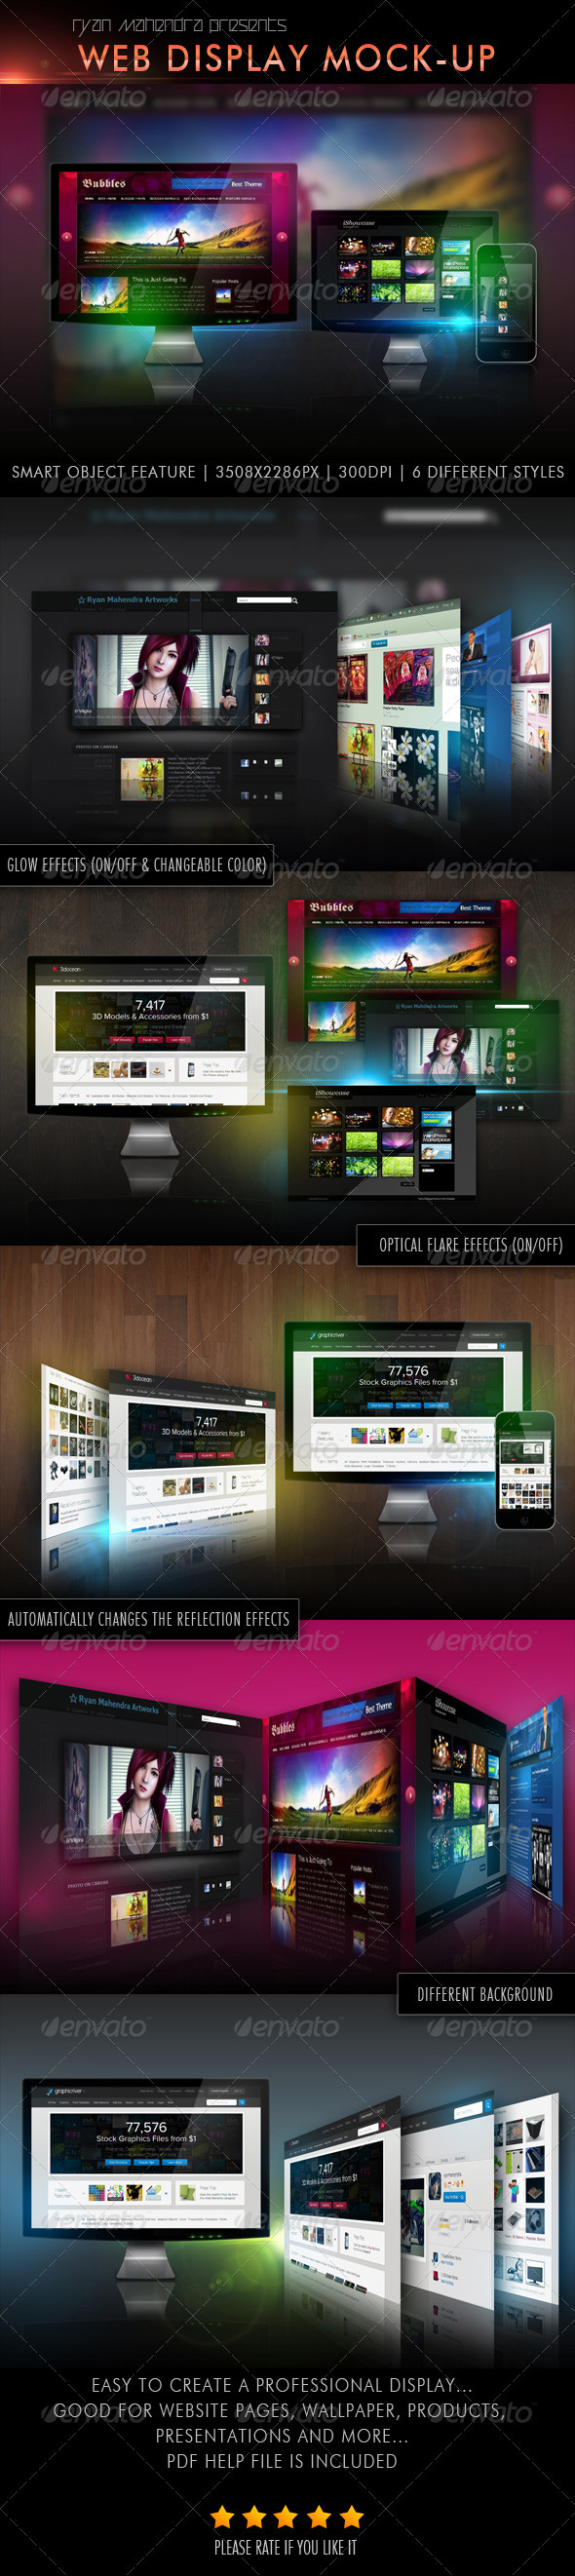 Web Display Mock-Up - Multiple Displays